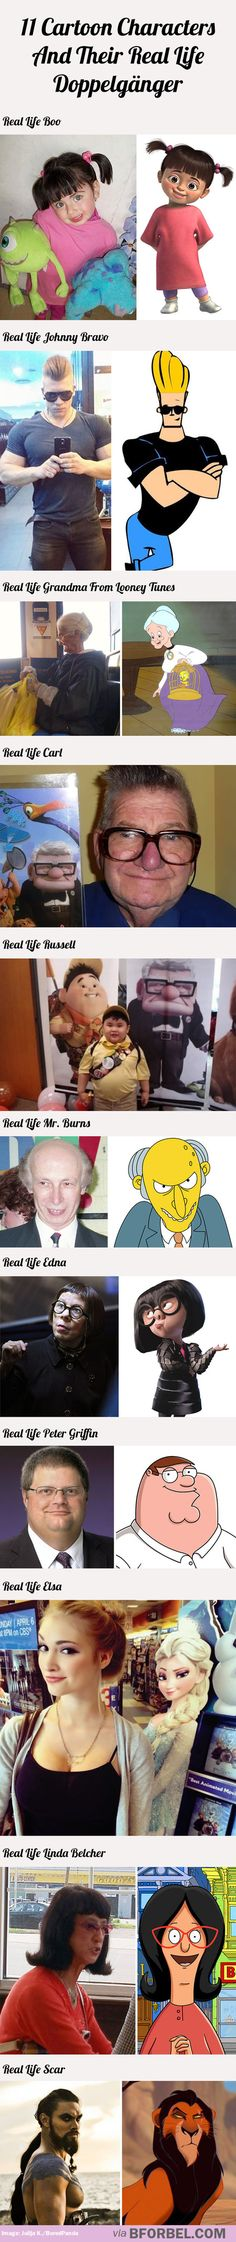 11 cartoon characters and their real life doppelgänger